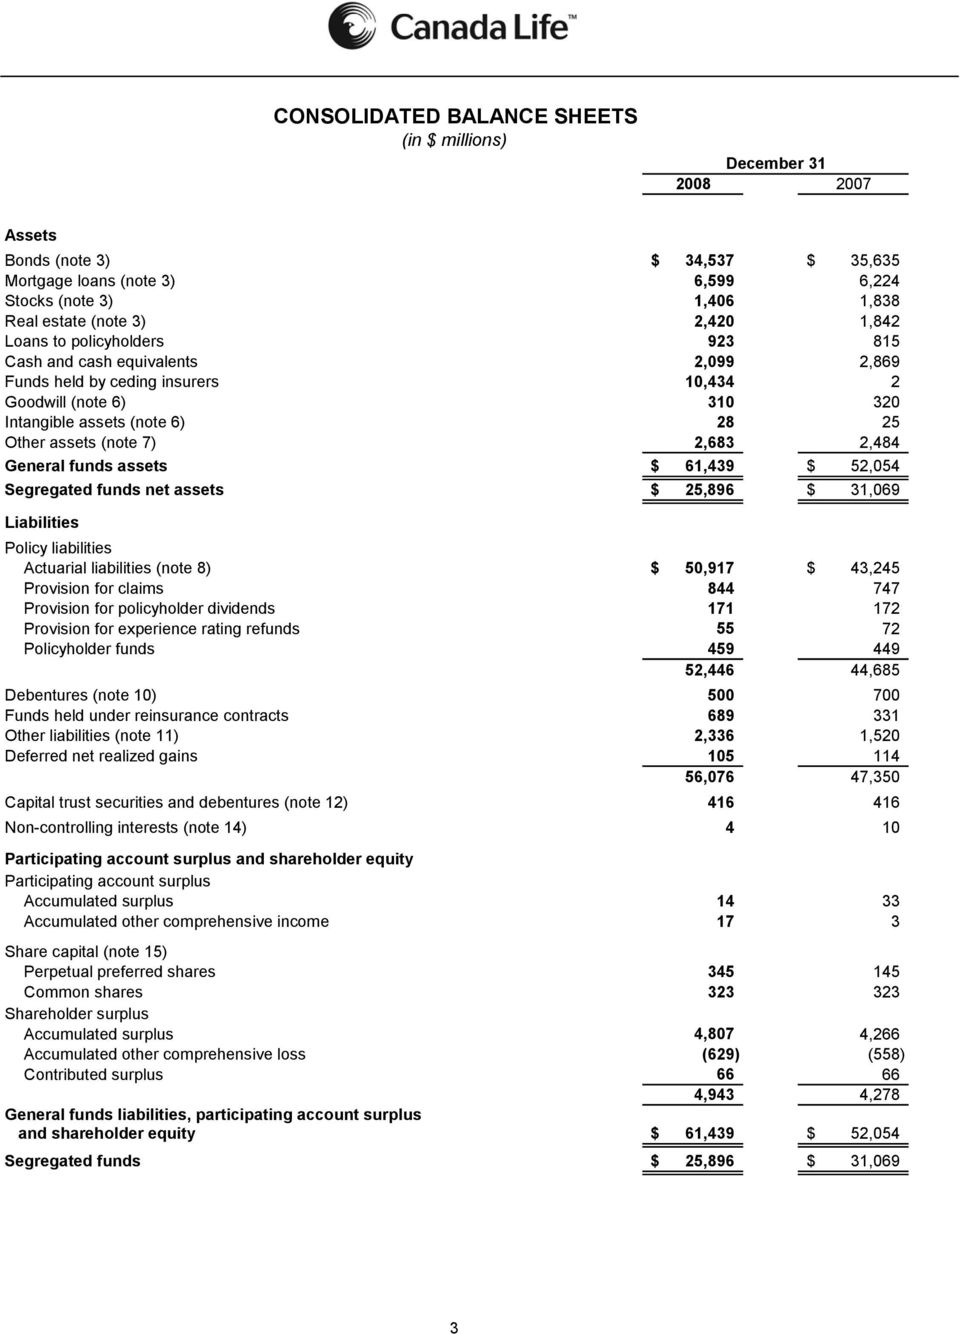 General funds assets $ 61,439 $ 52,054 Segregated funds net assets $ 25,896 $ 31,069 Liabilities Policy liabilities Actuarial liabilities (note 8) $ 50,917 $ 43,245 Provision for claims 844 747